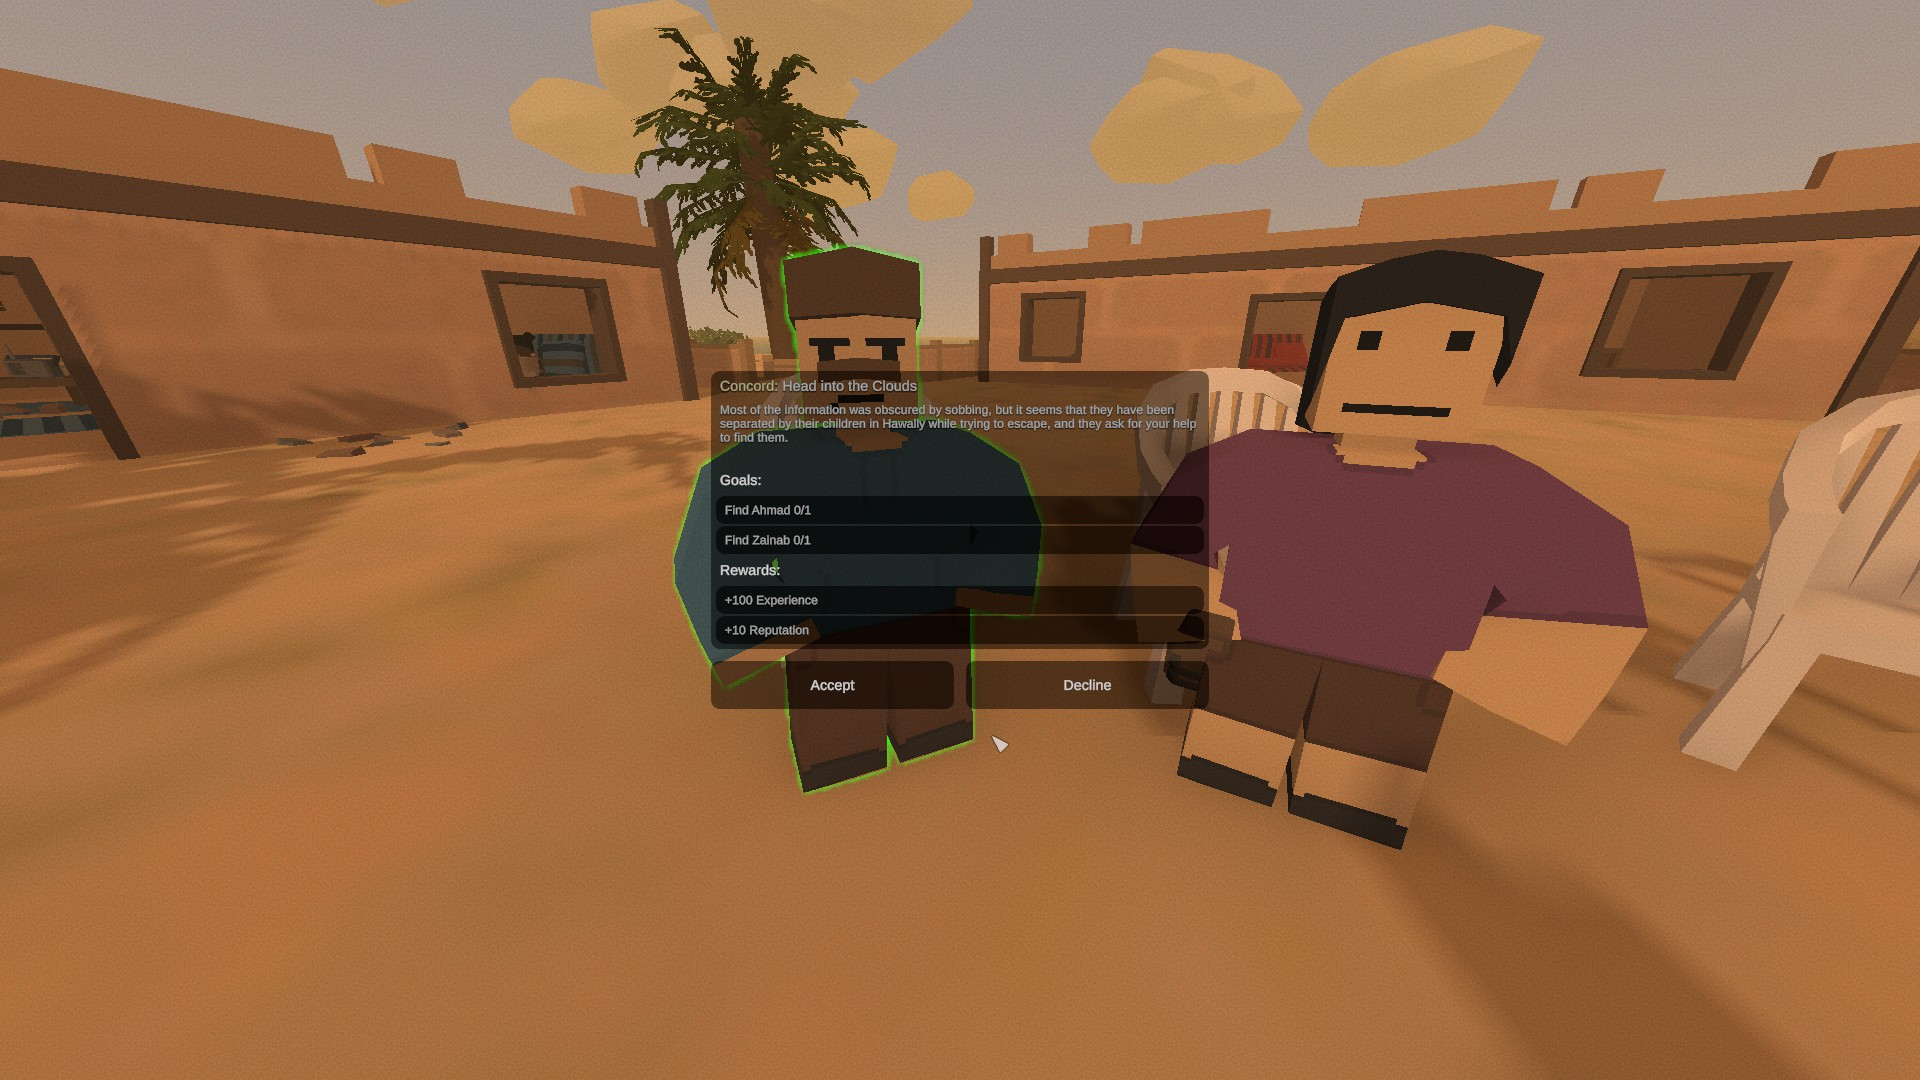 Unturned - Kuwait Major Questlines Guide - Khalid and Salma: Head into the Clouds